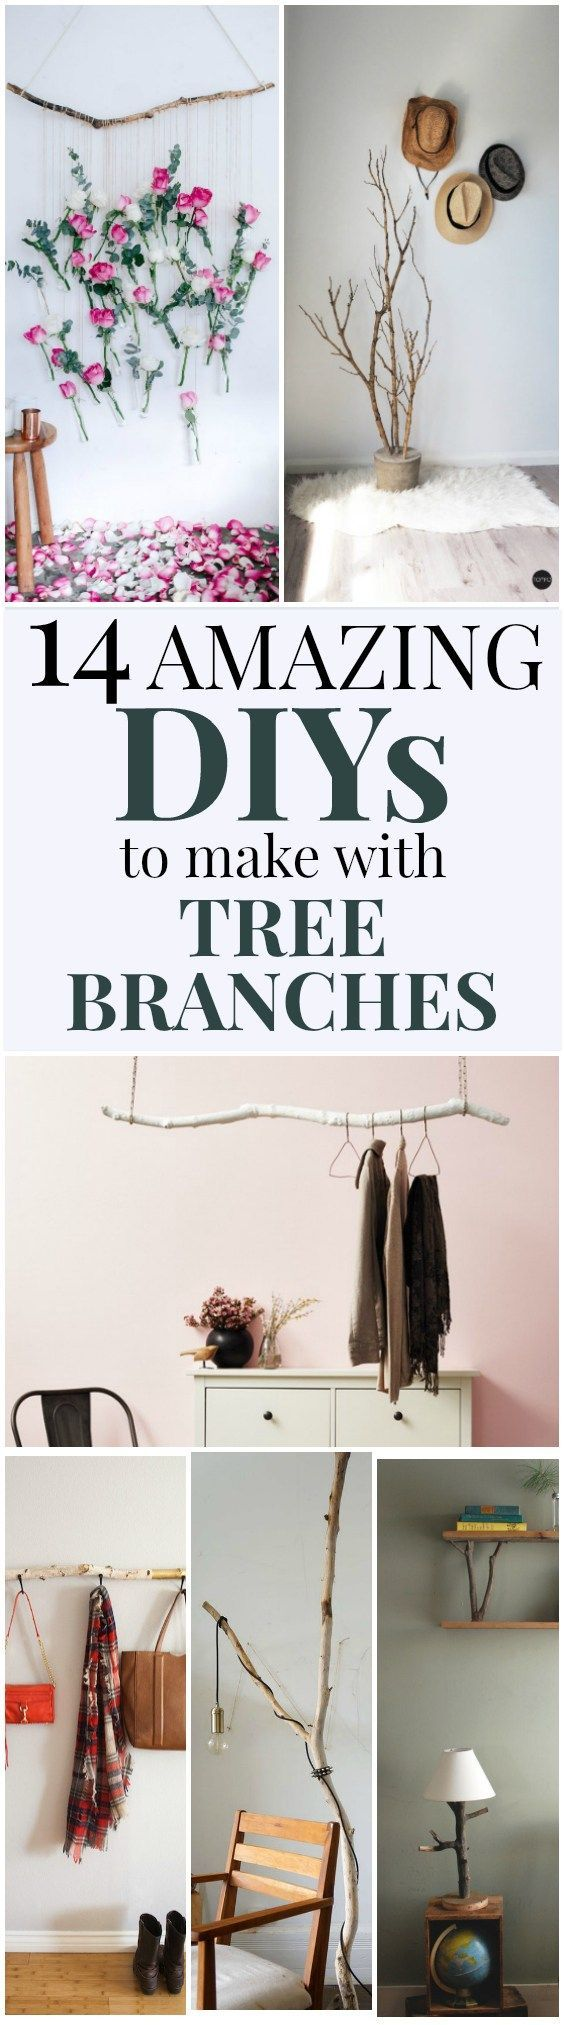 14 Home Decor DIYs to Make with Tree Branches | These DIYs made with repurposed tree branches will bring natural wood into your home decor! Perfect for minimalist and modern home decor styles! #DIY #repurpose #DIYhomedecor